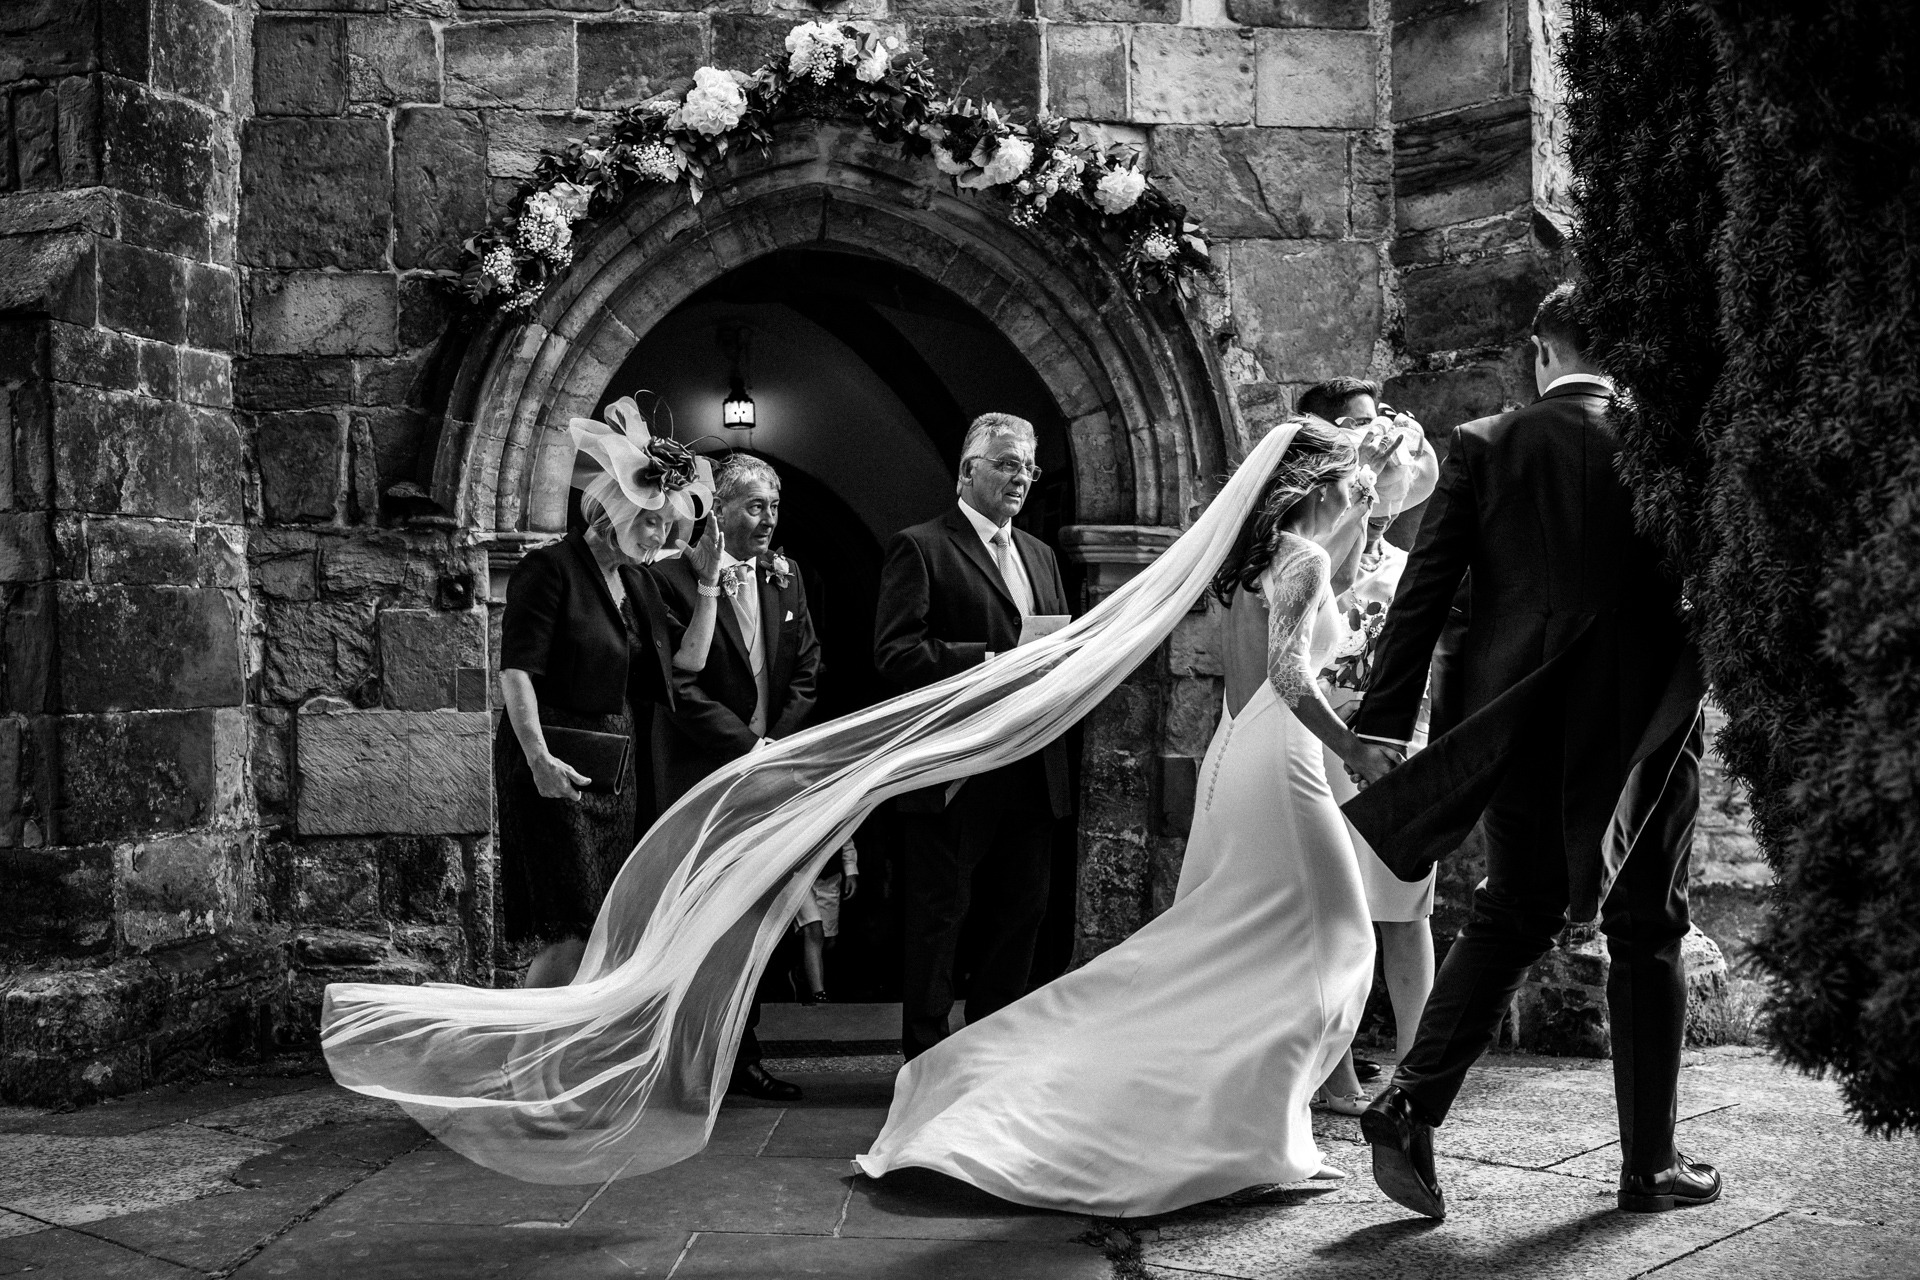 Paul Rogers, of Hertfordshire, is a wedding photographer for Ticehurst, UK